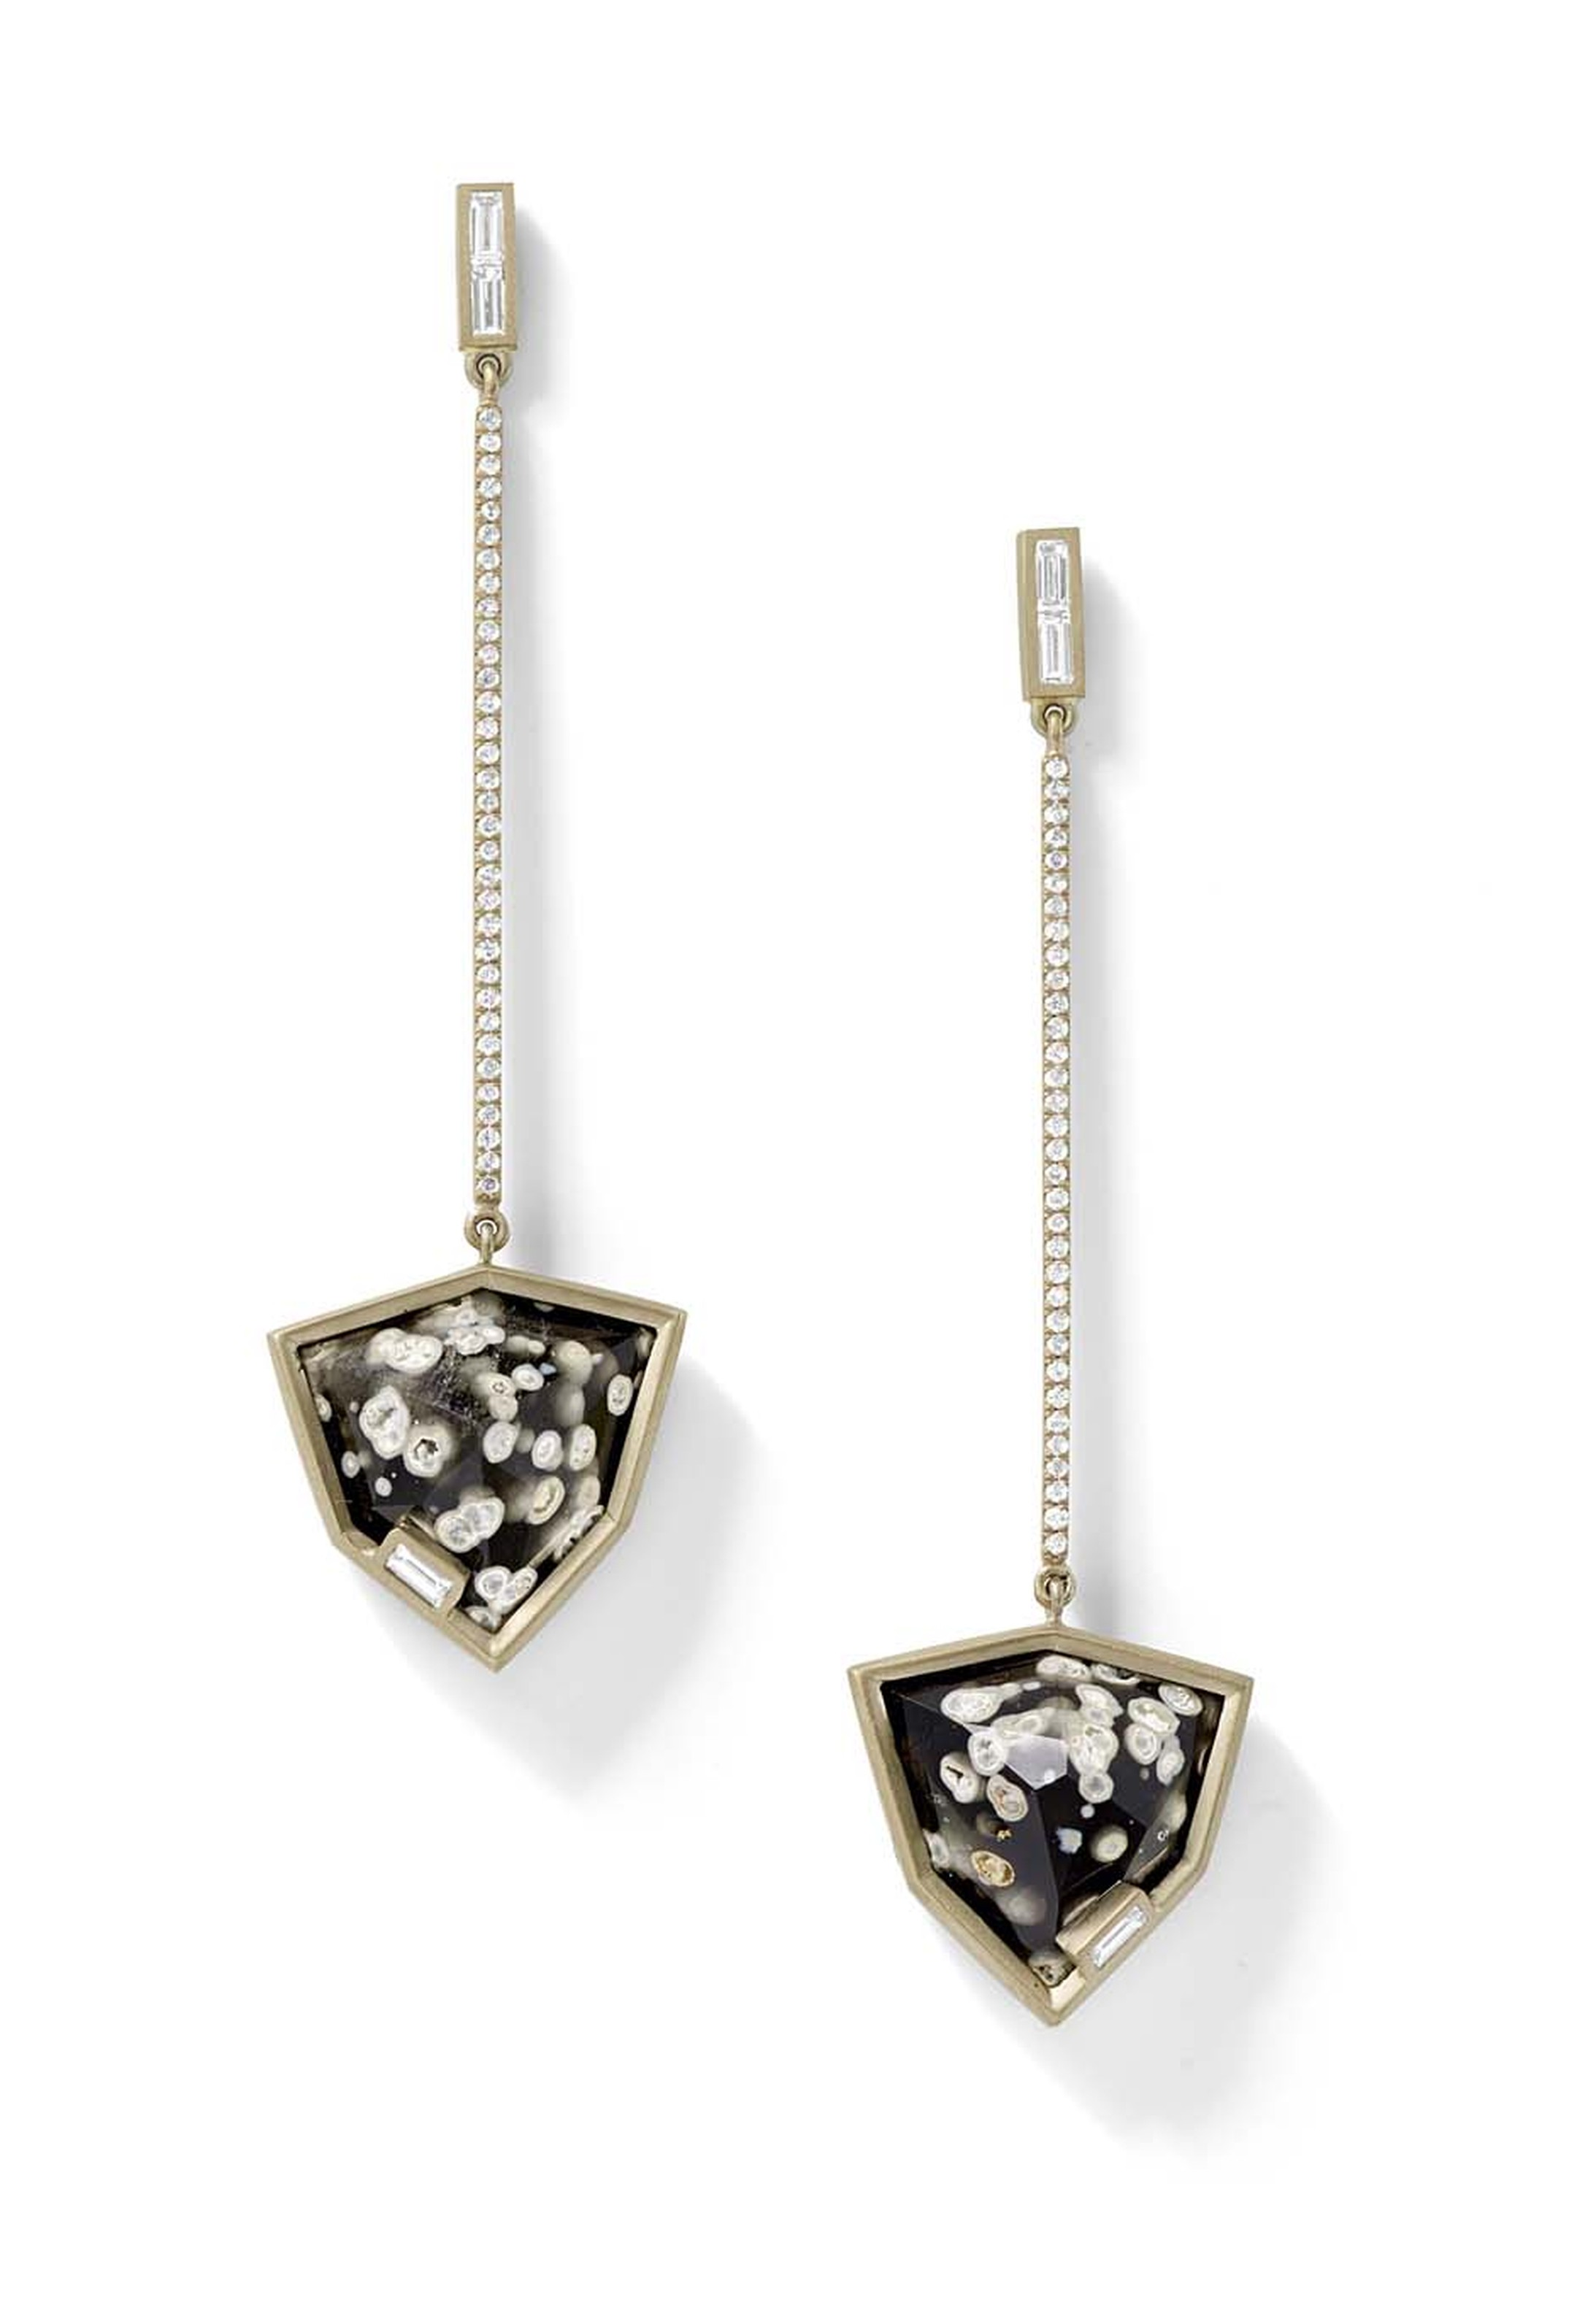 Obsidian shield earrings with white diamond baguettes and white diamond pavé, set in recycled white gold from Monique Péan.